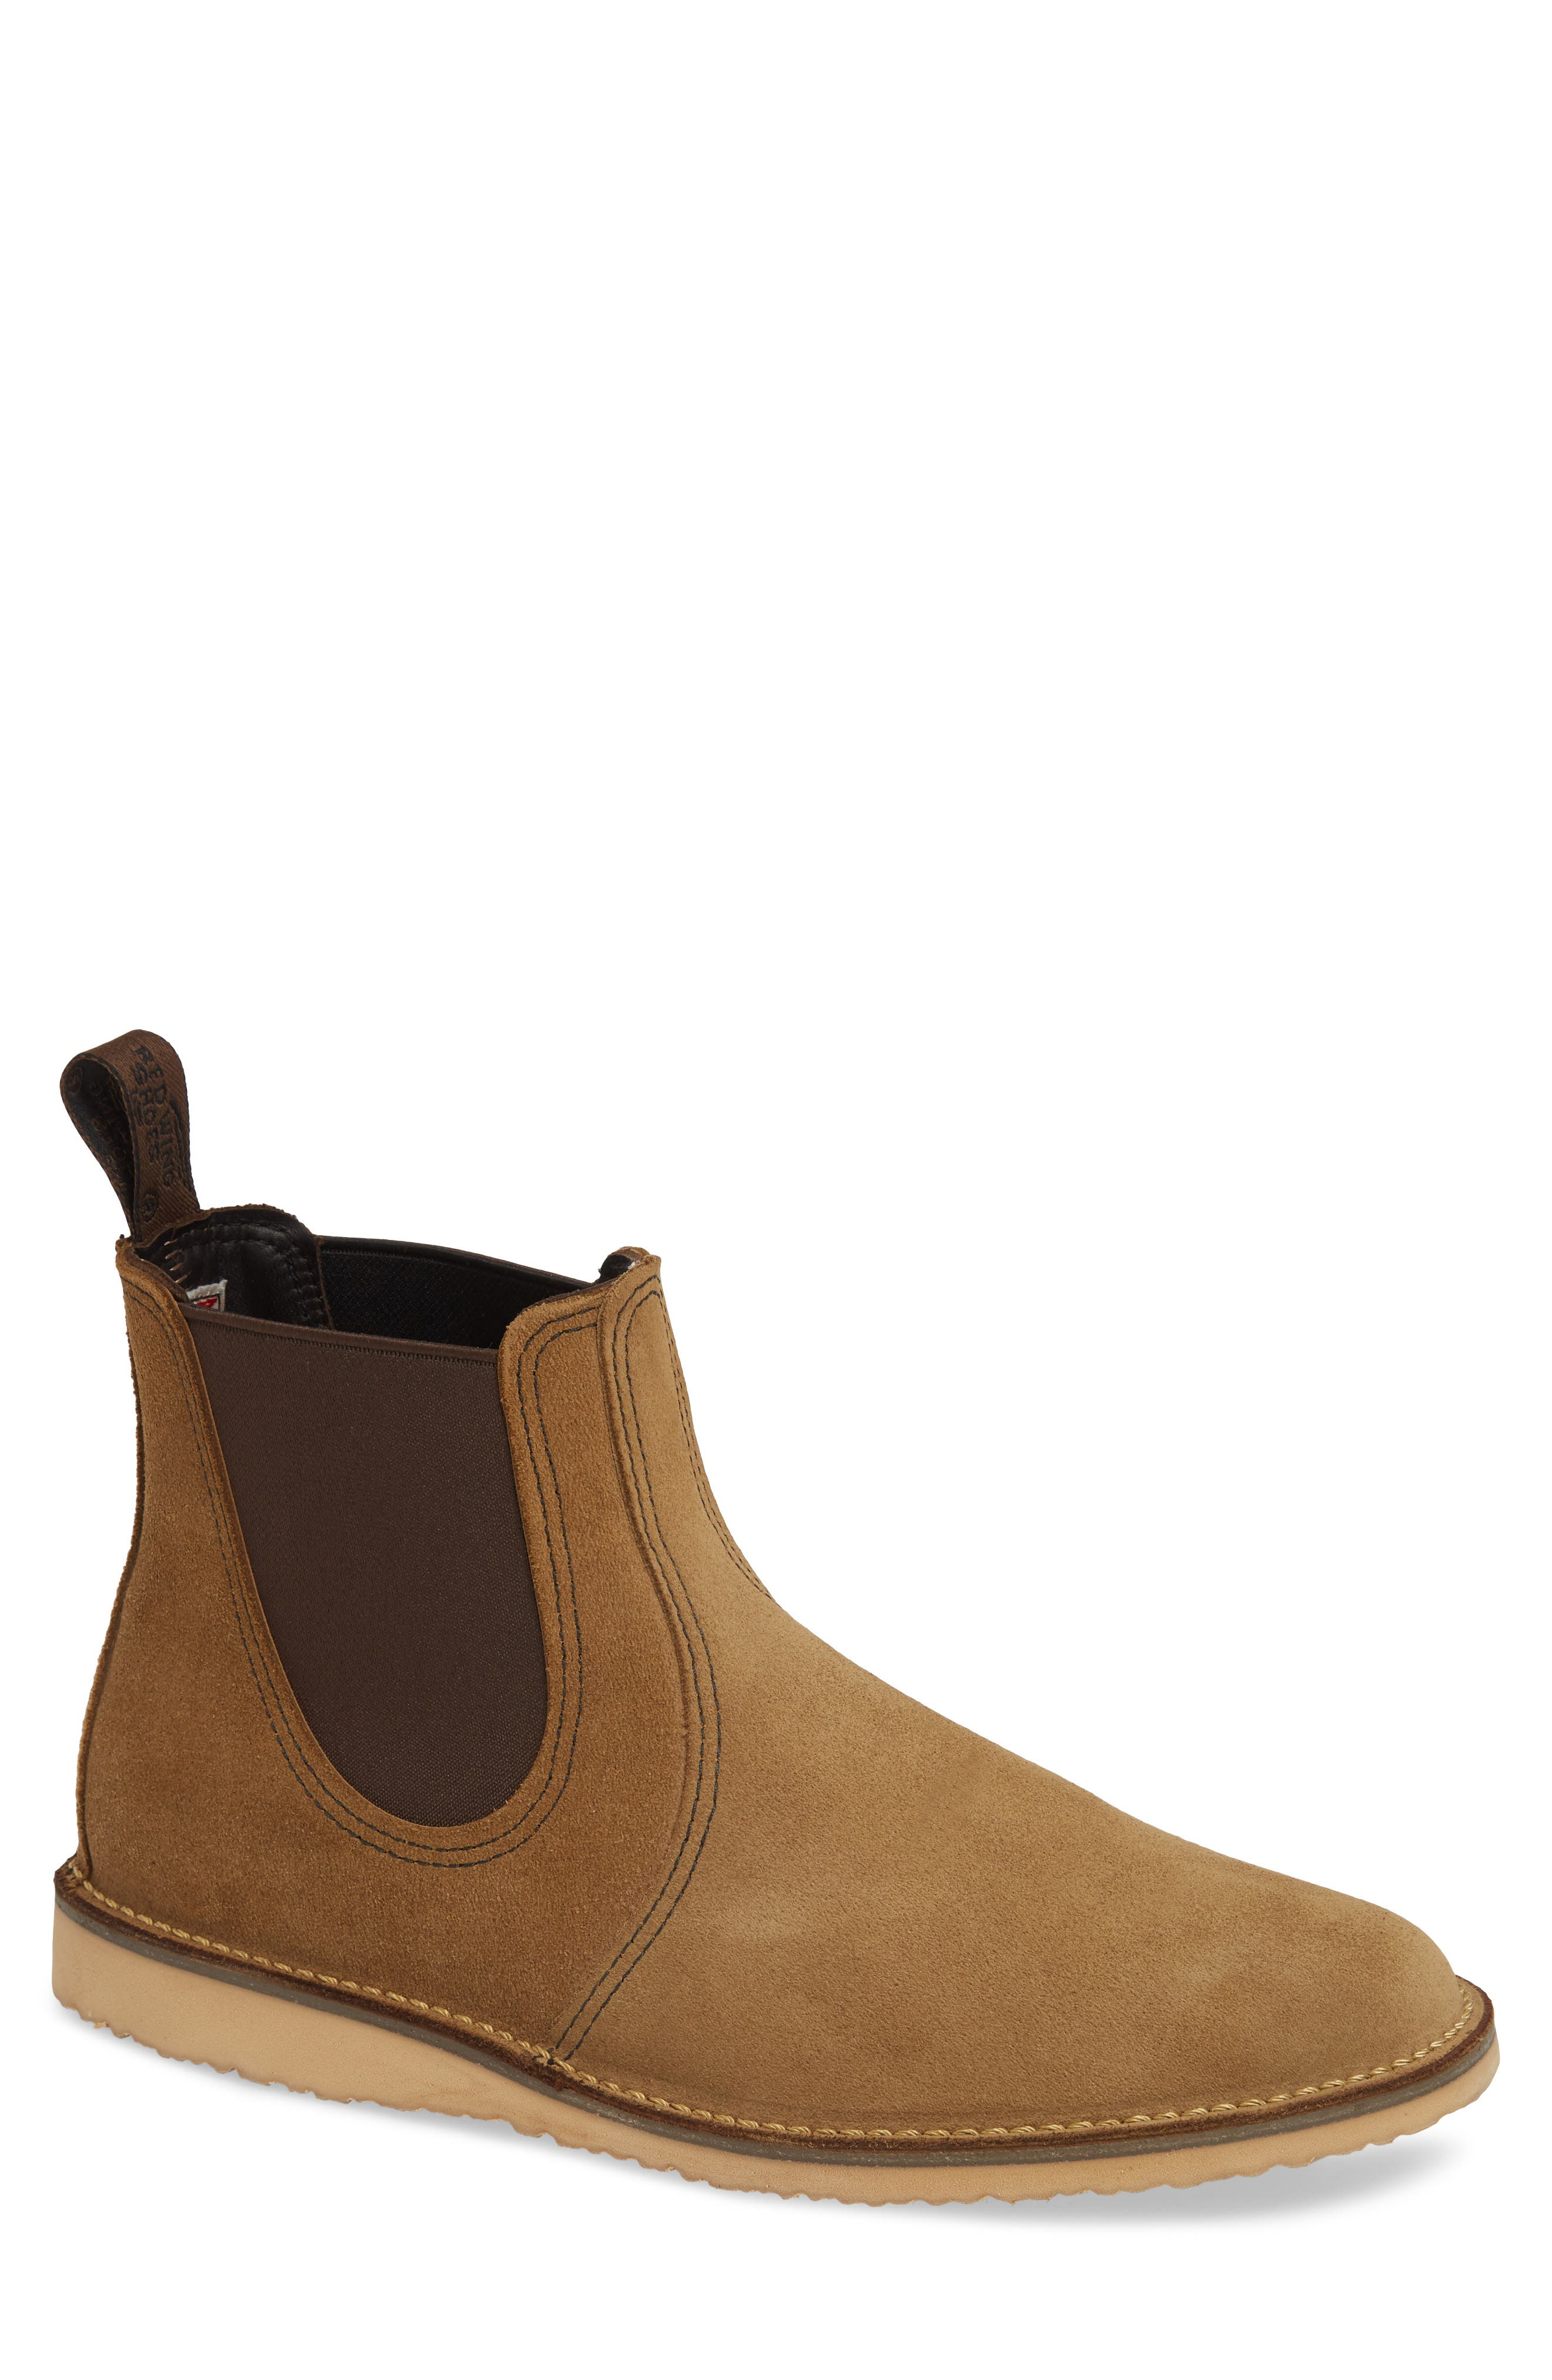 Red Wing Chelsea Boot, Green